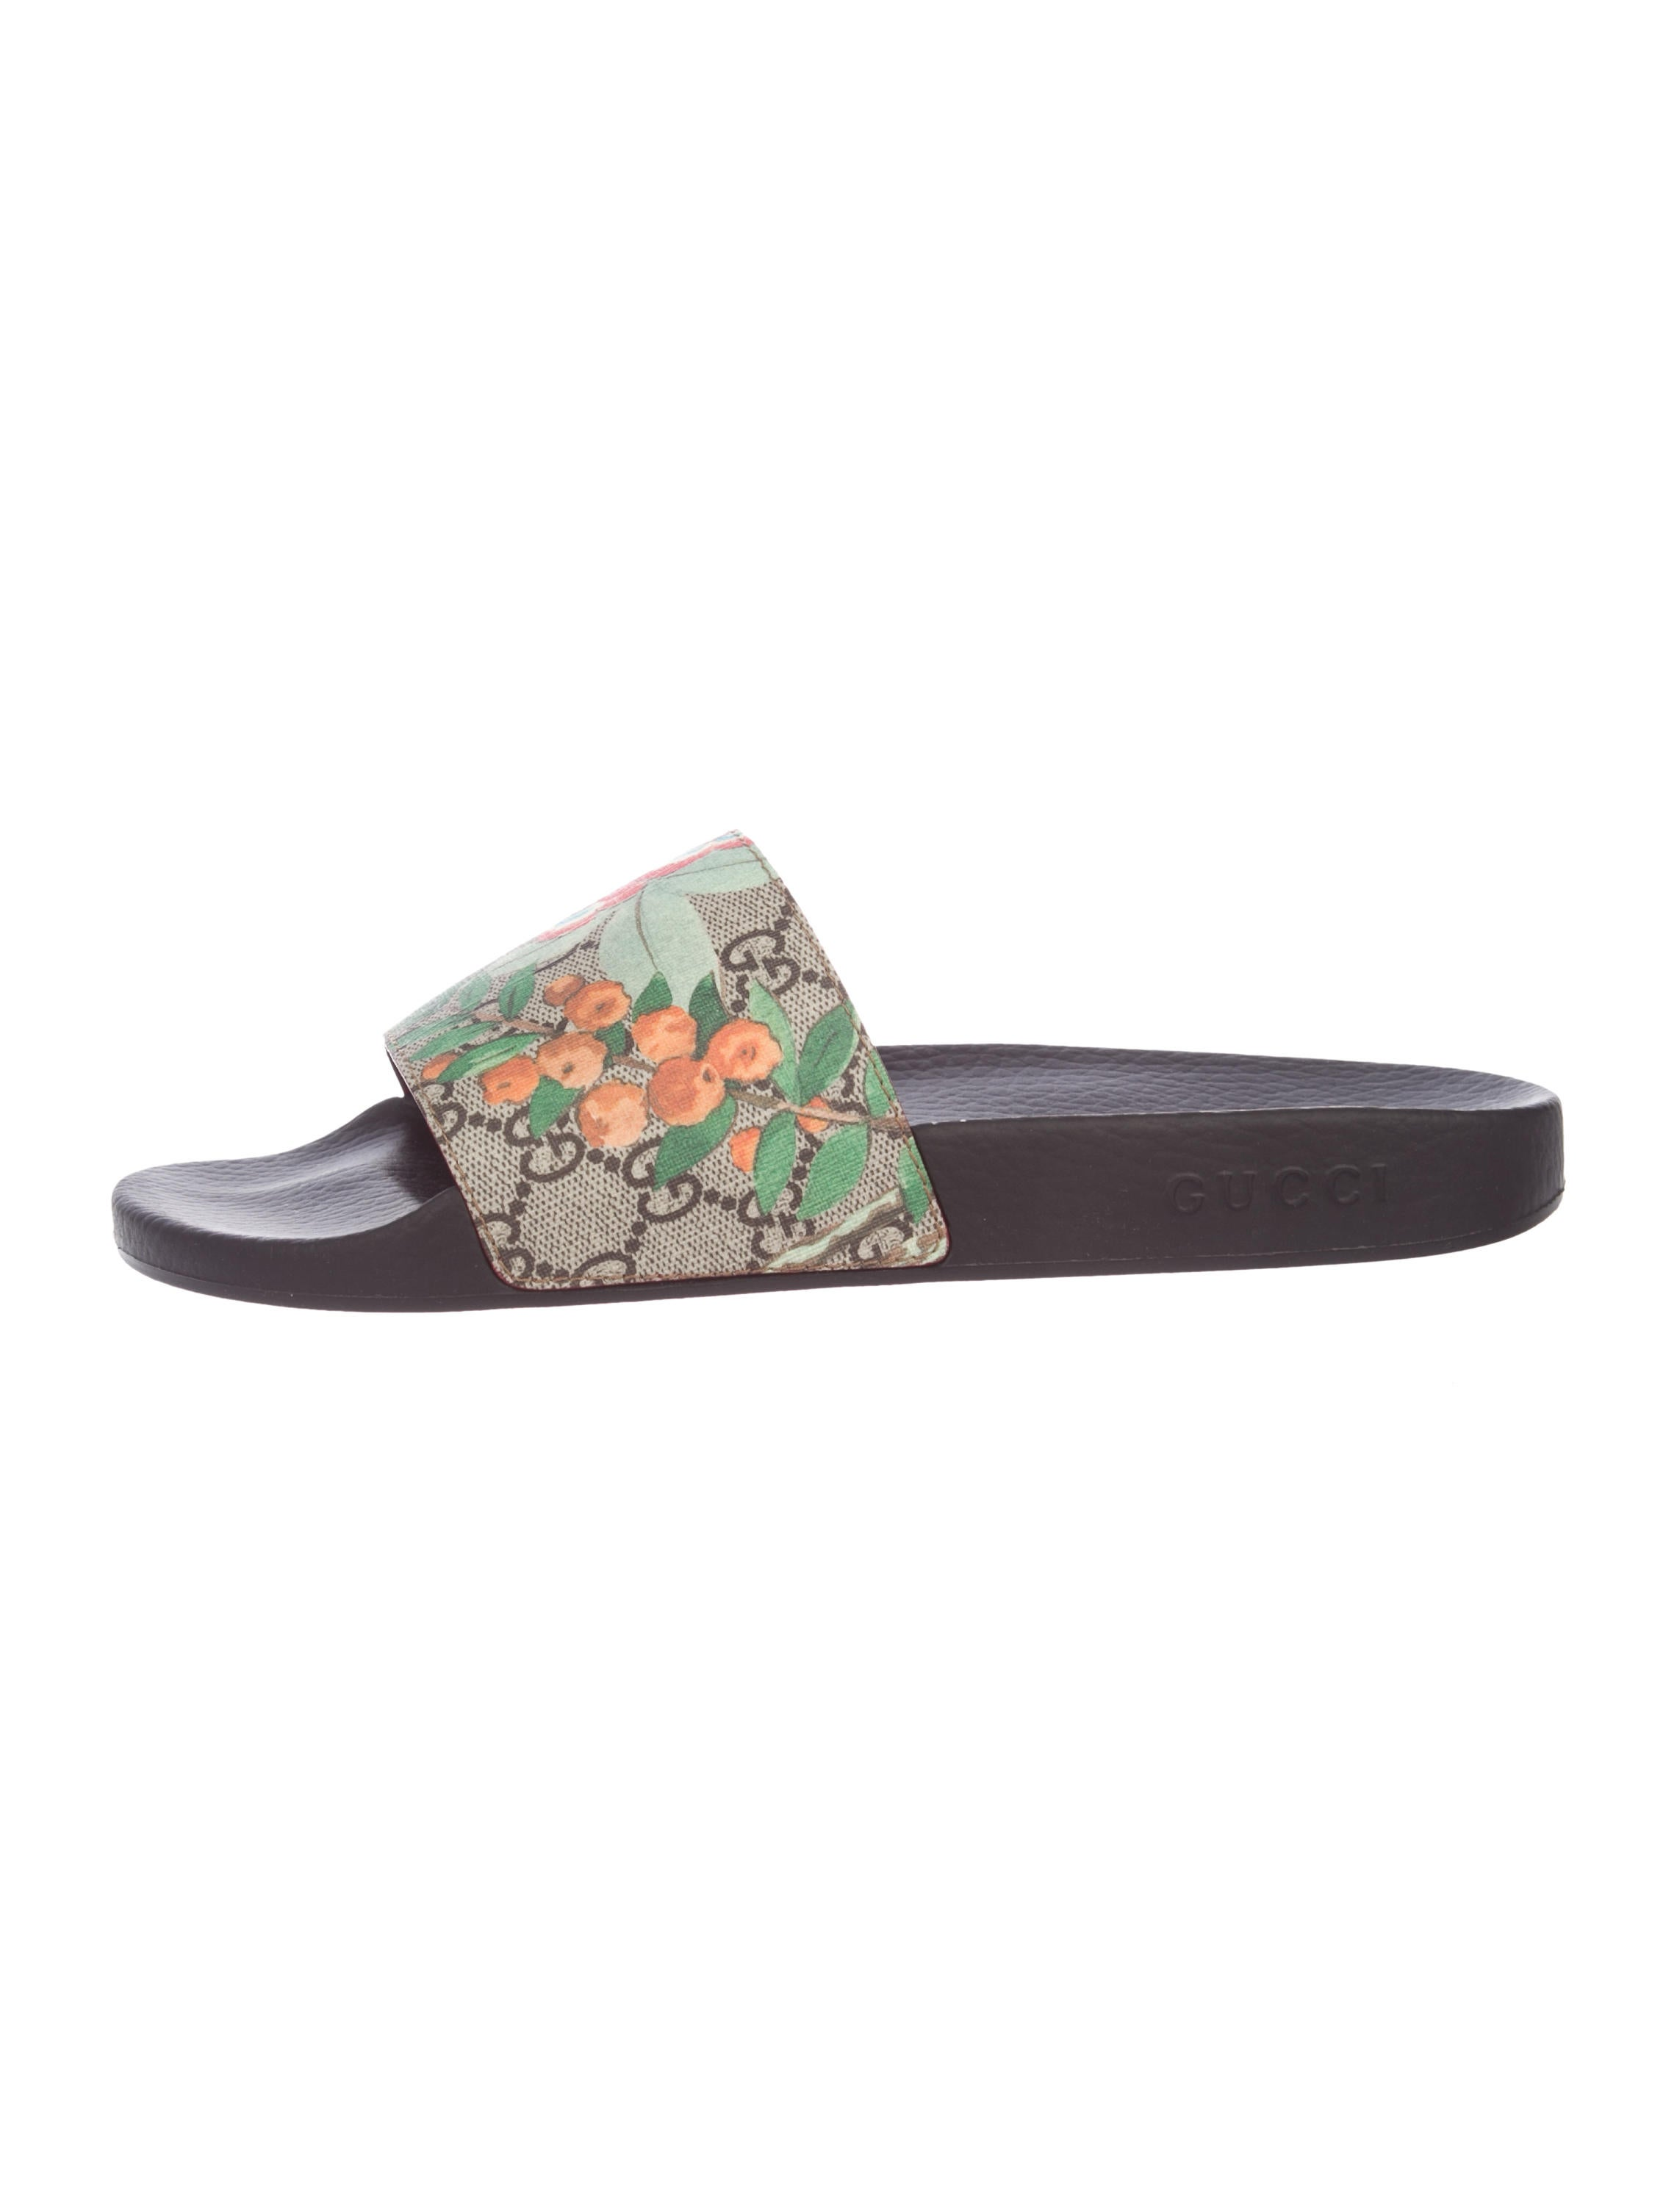 d98ad28f4dd3 Gucci GG Tian Slide Sandals w  Tags - Shoes - GUC218390